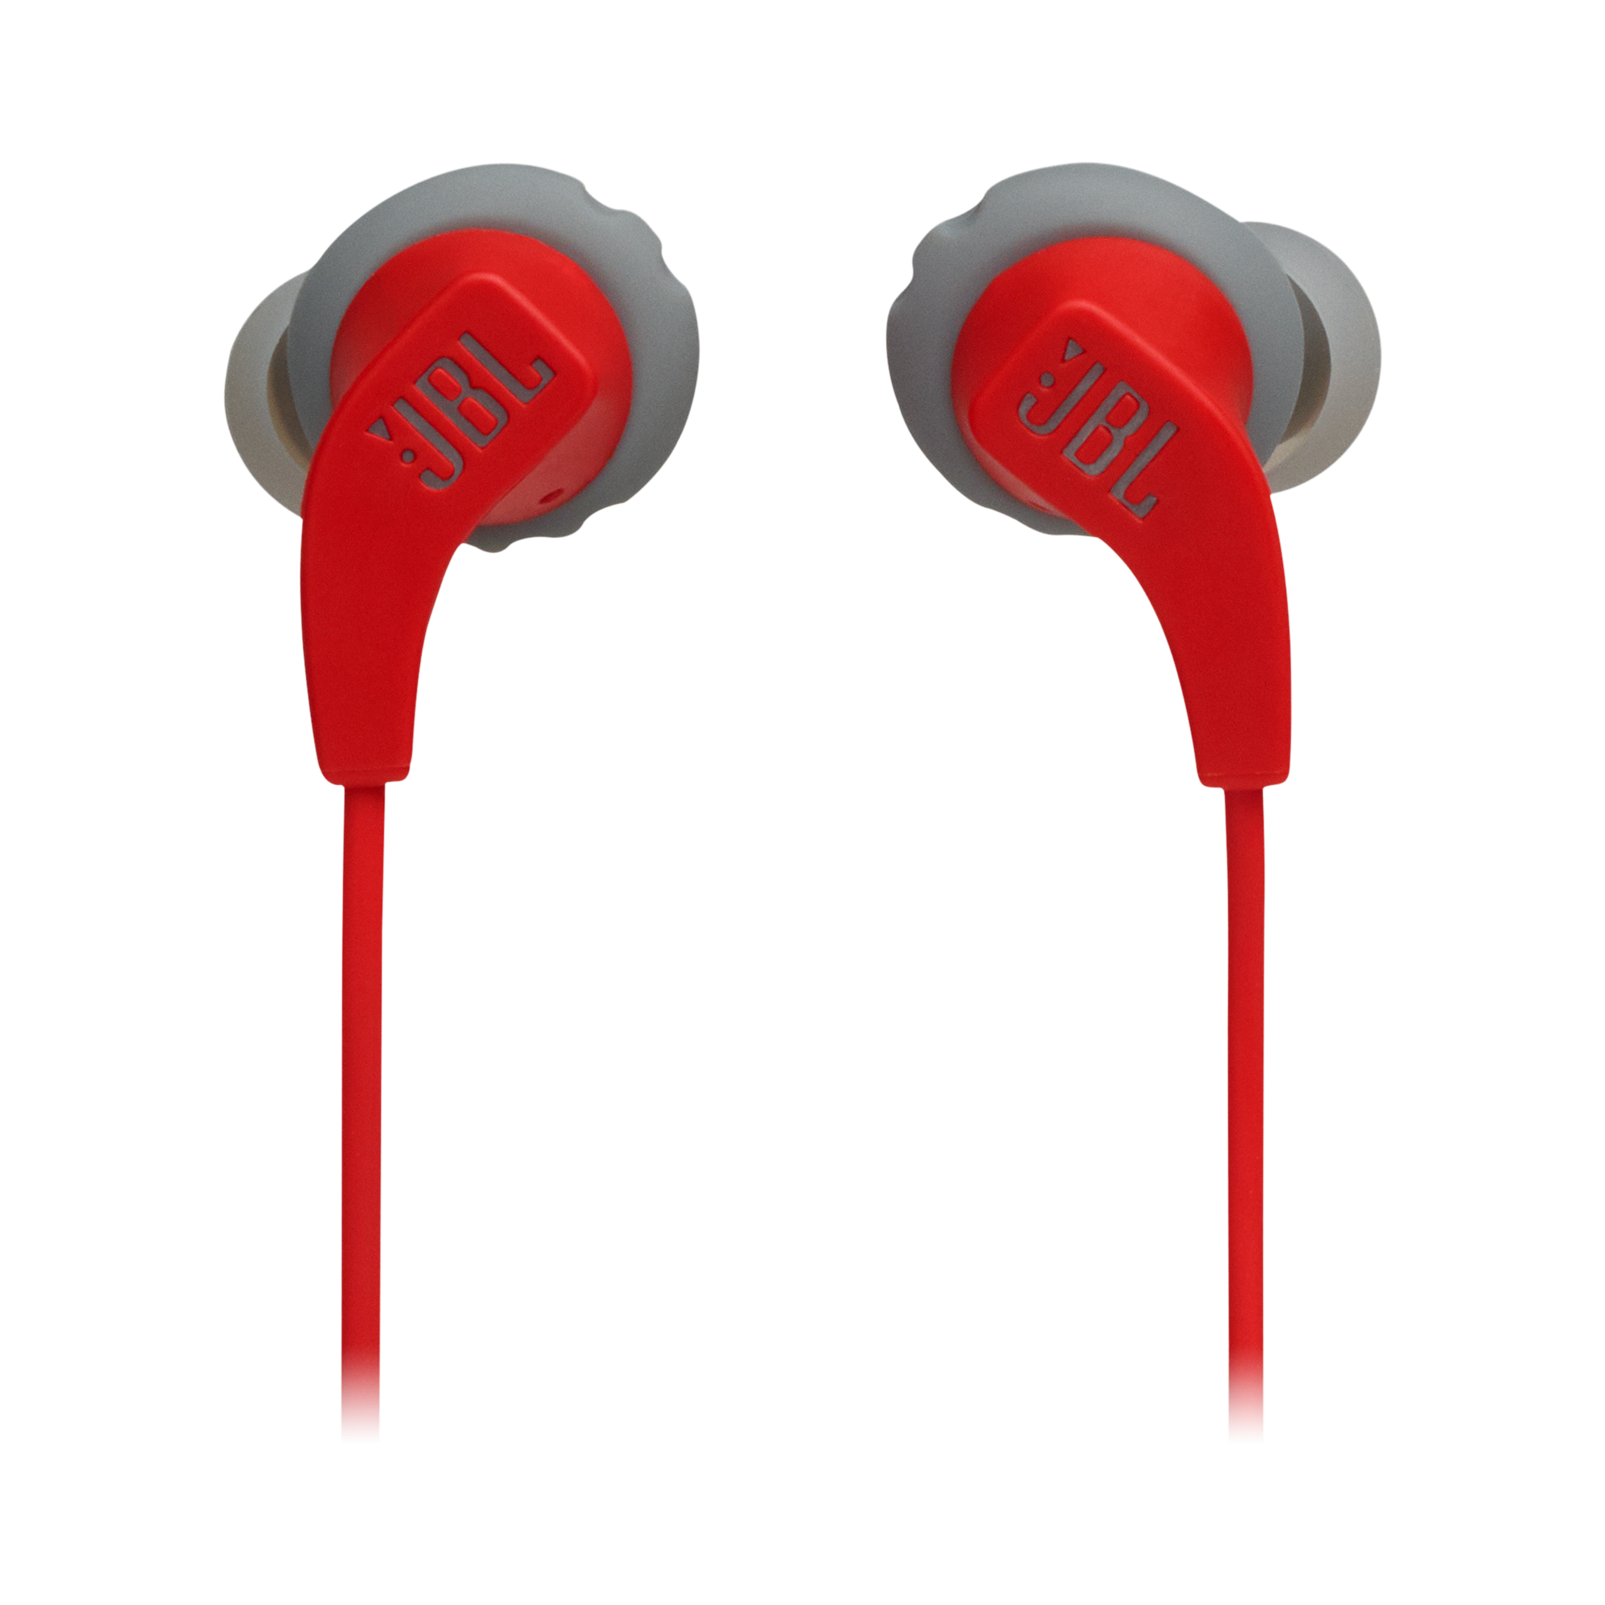 JBL Endurance RUNBT - Red - Sweatproof Wireless In-Ear Sport Headphones - Front